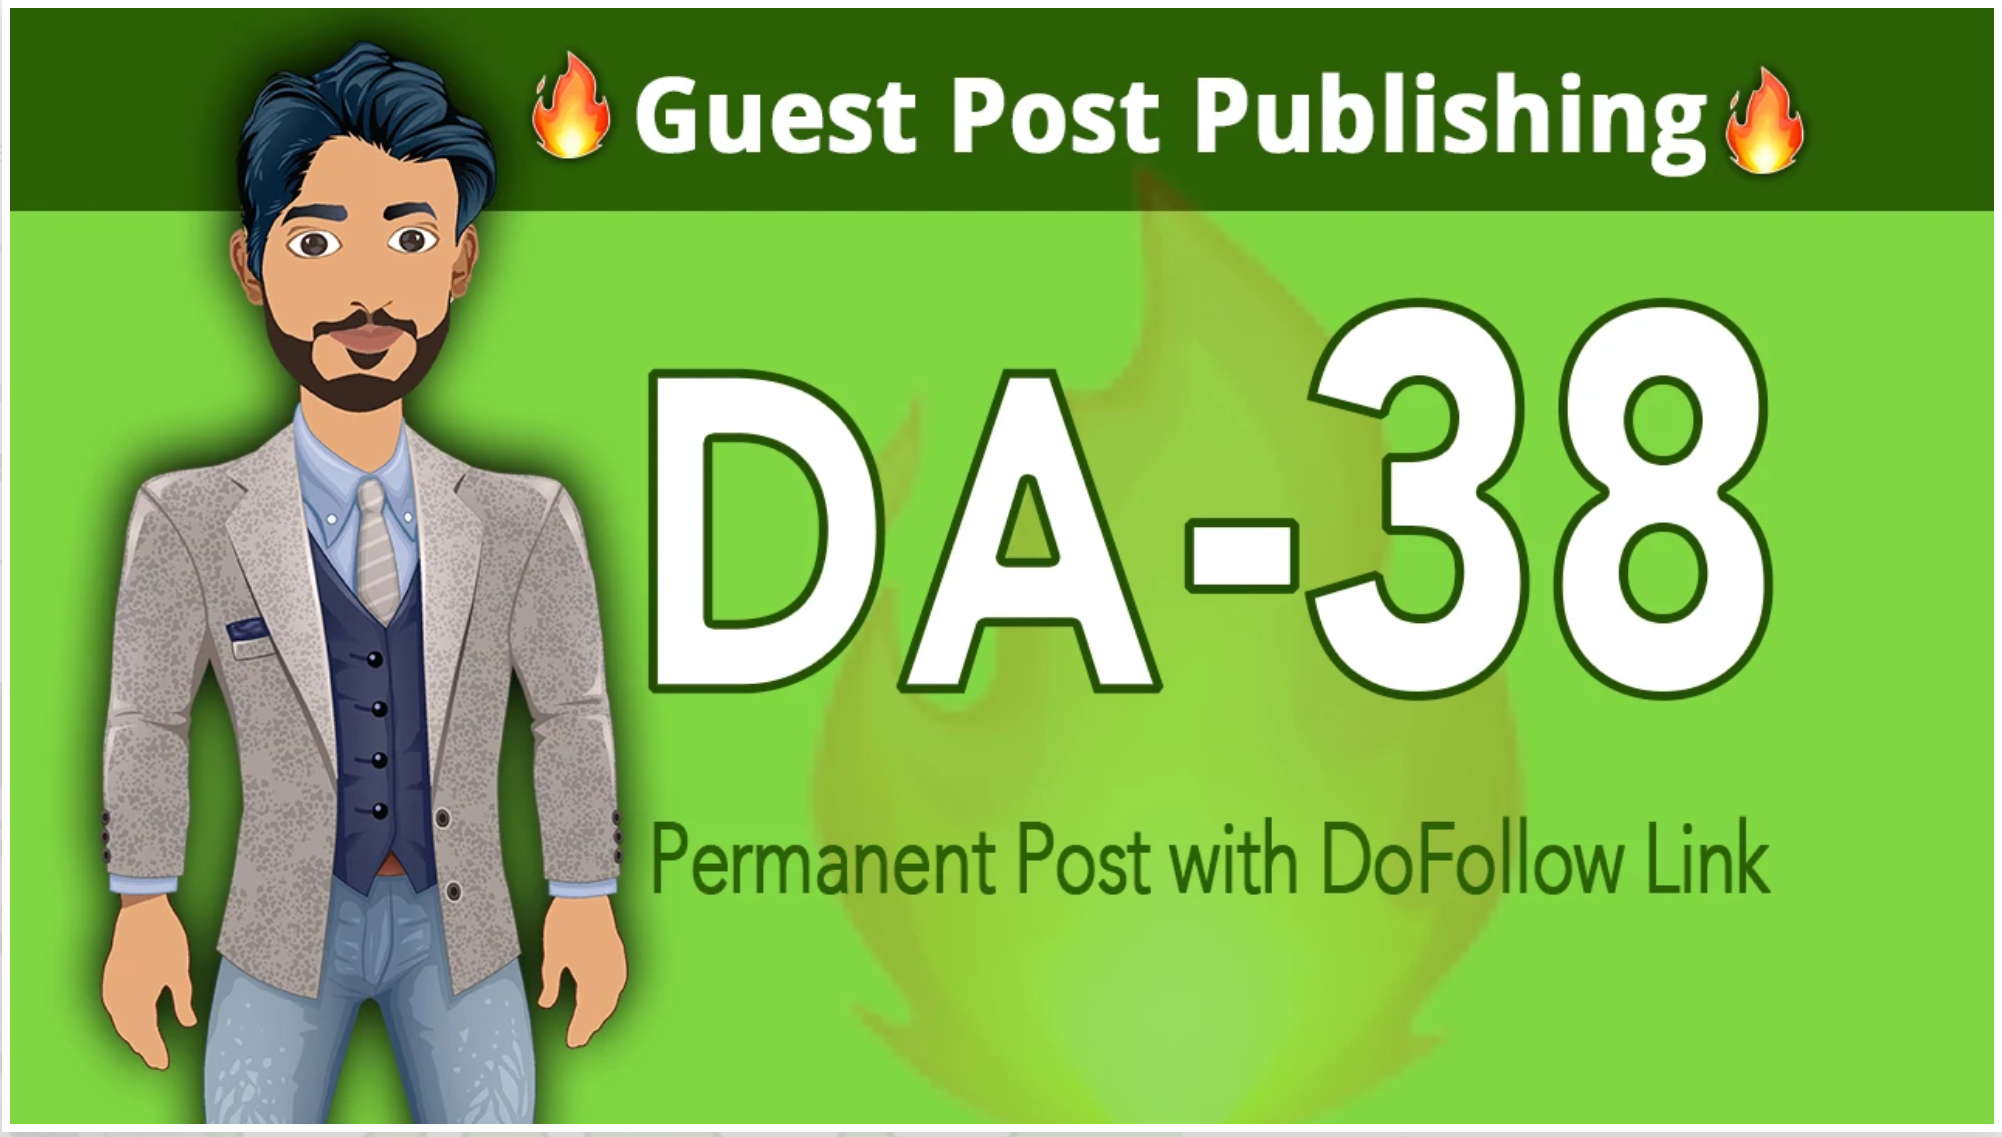 guest post on da 38 blog with dofollow link